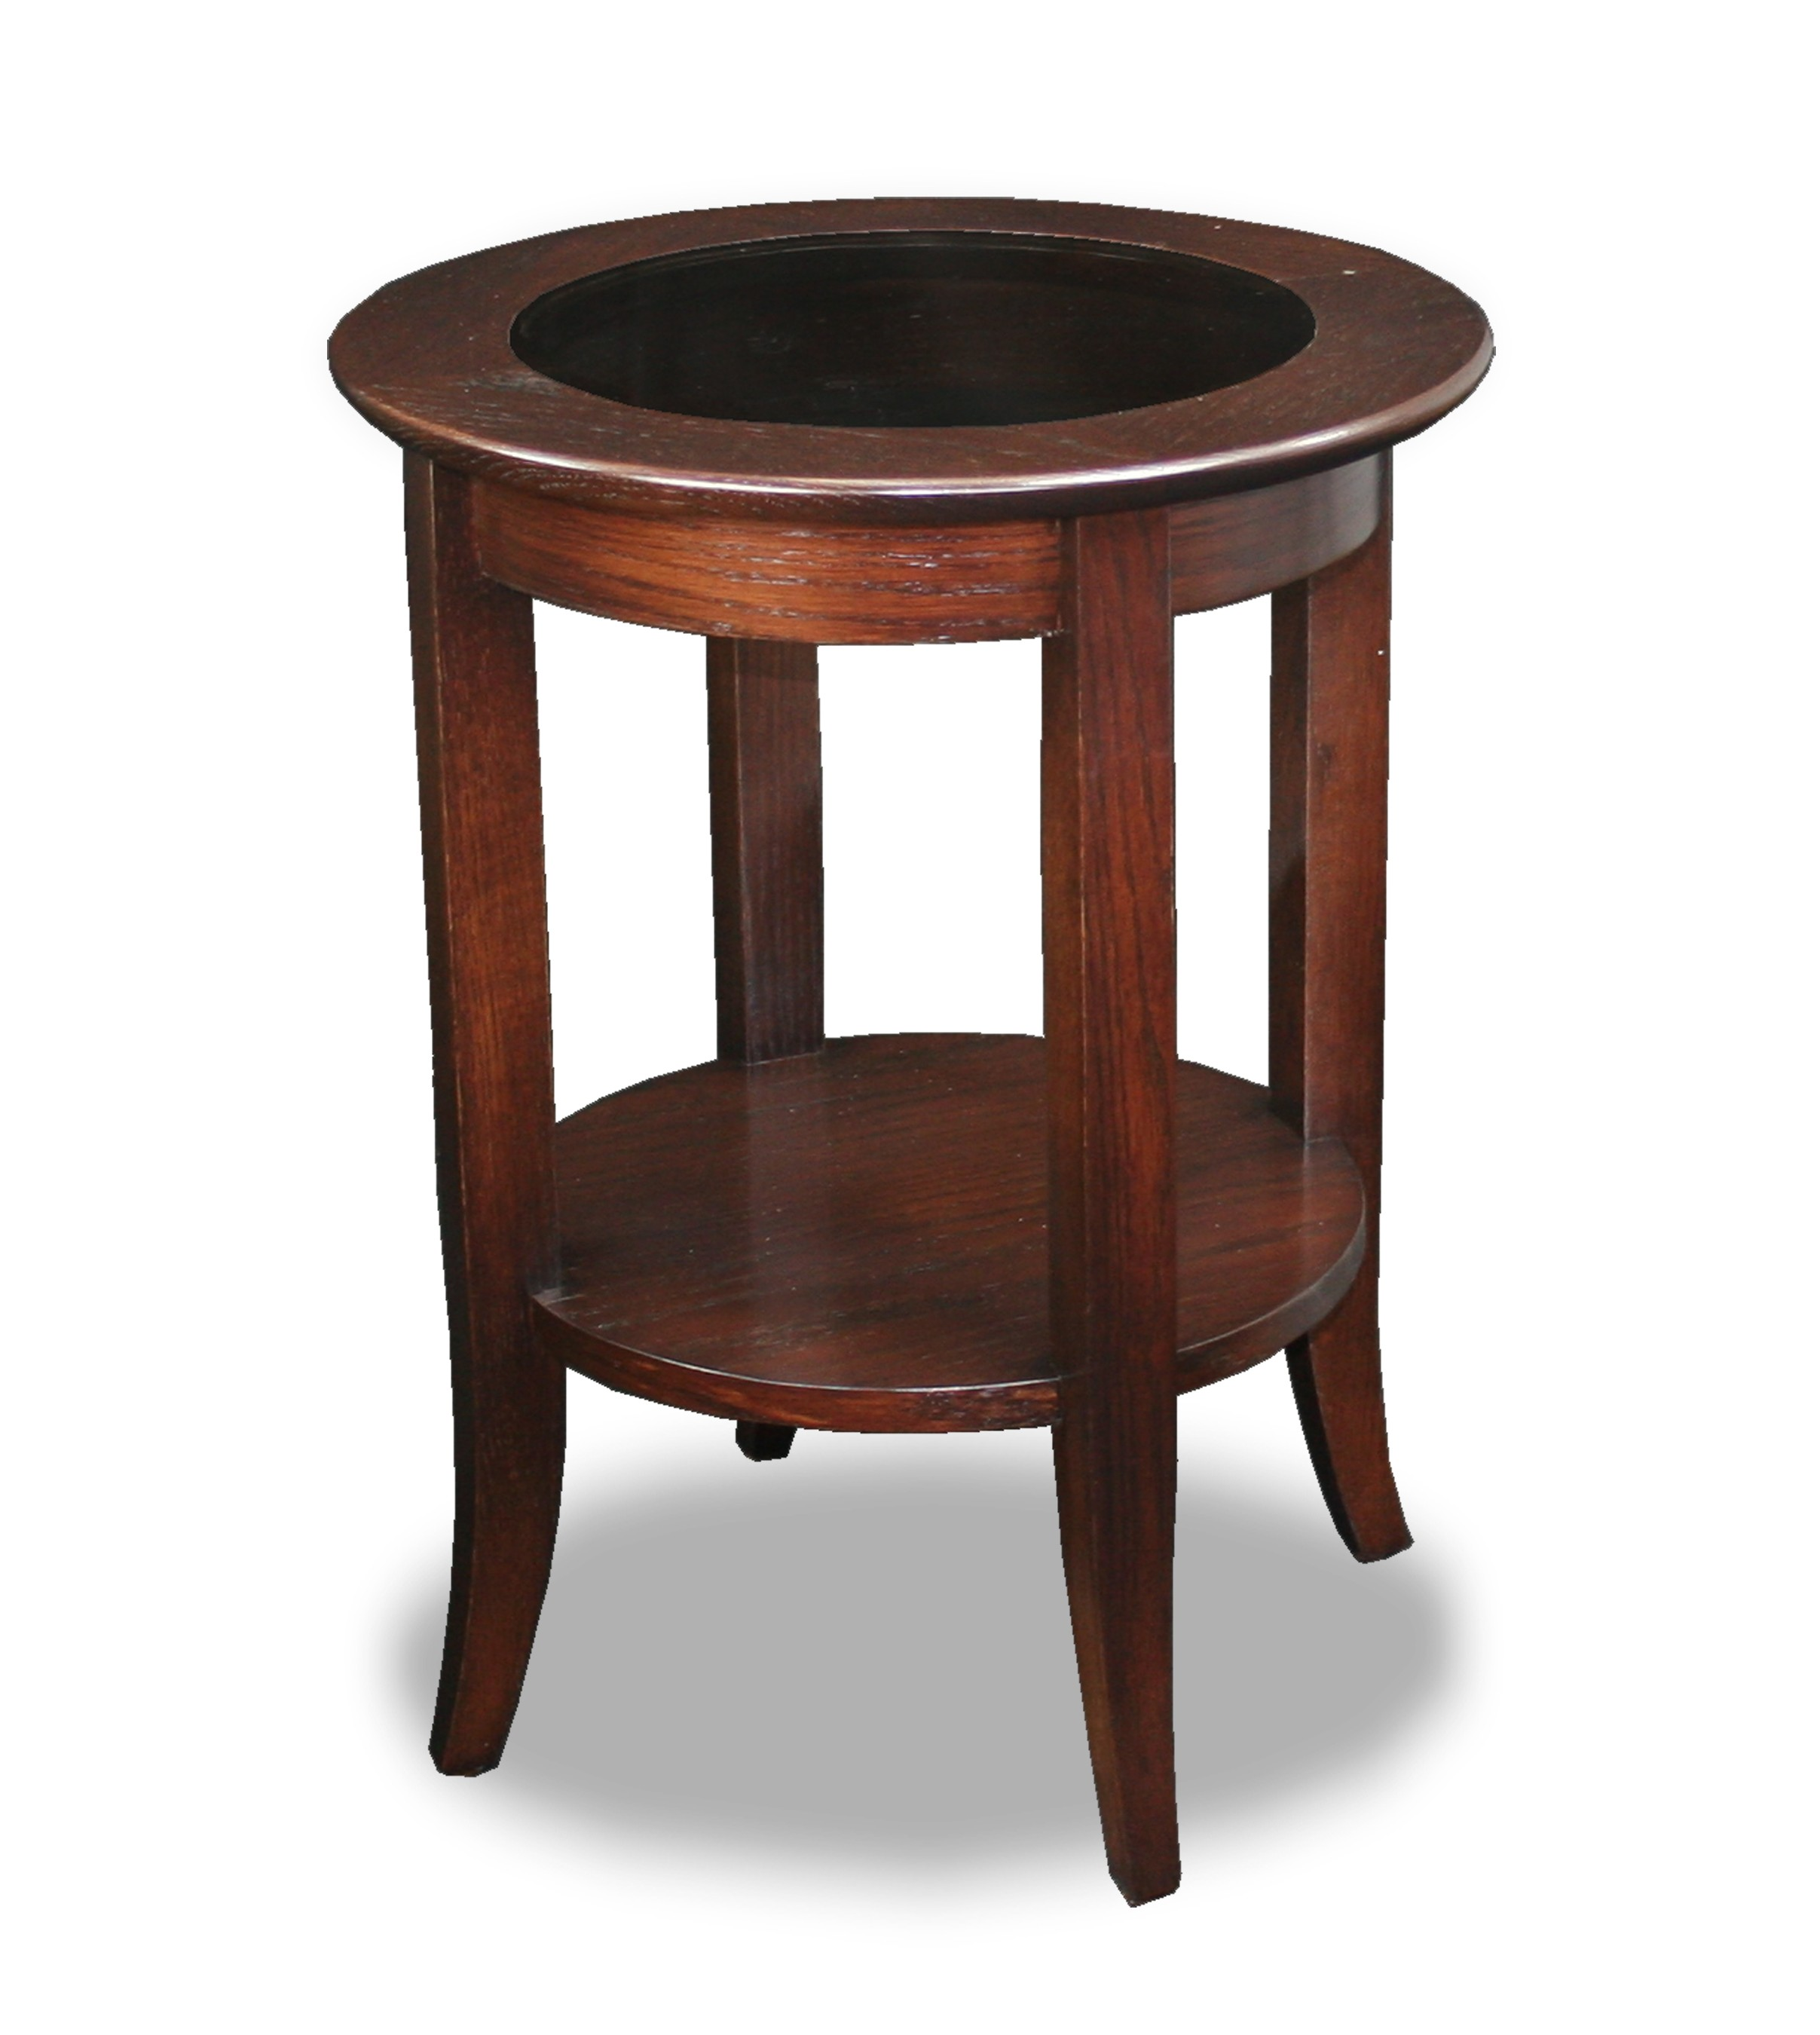 table designs probably fantastic cool dark teal end accent tables round black living room wood with storage corner for tall side coffee and set circular full size best small